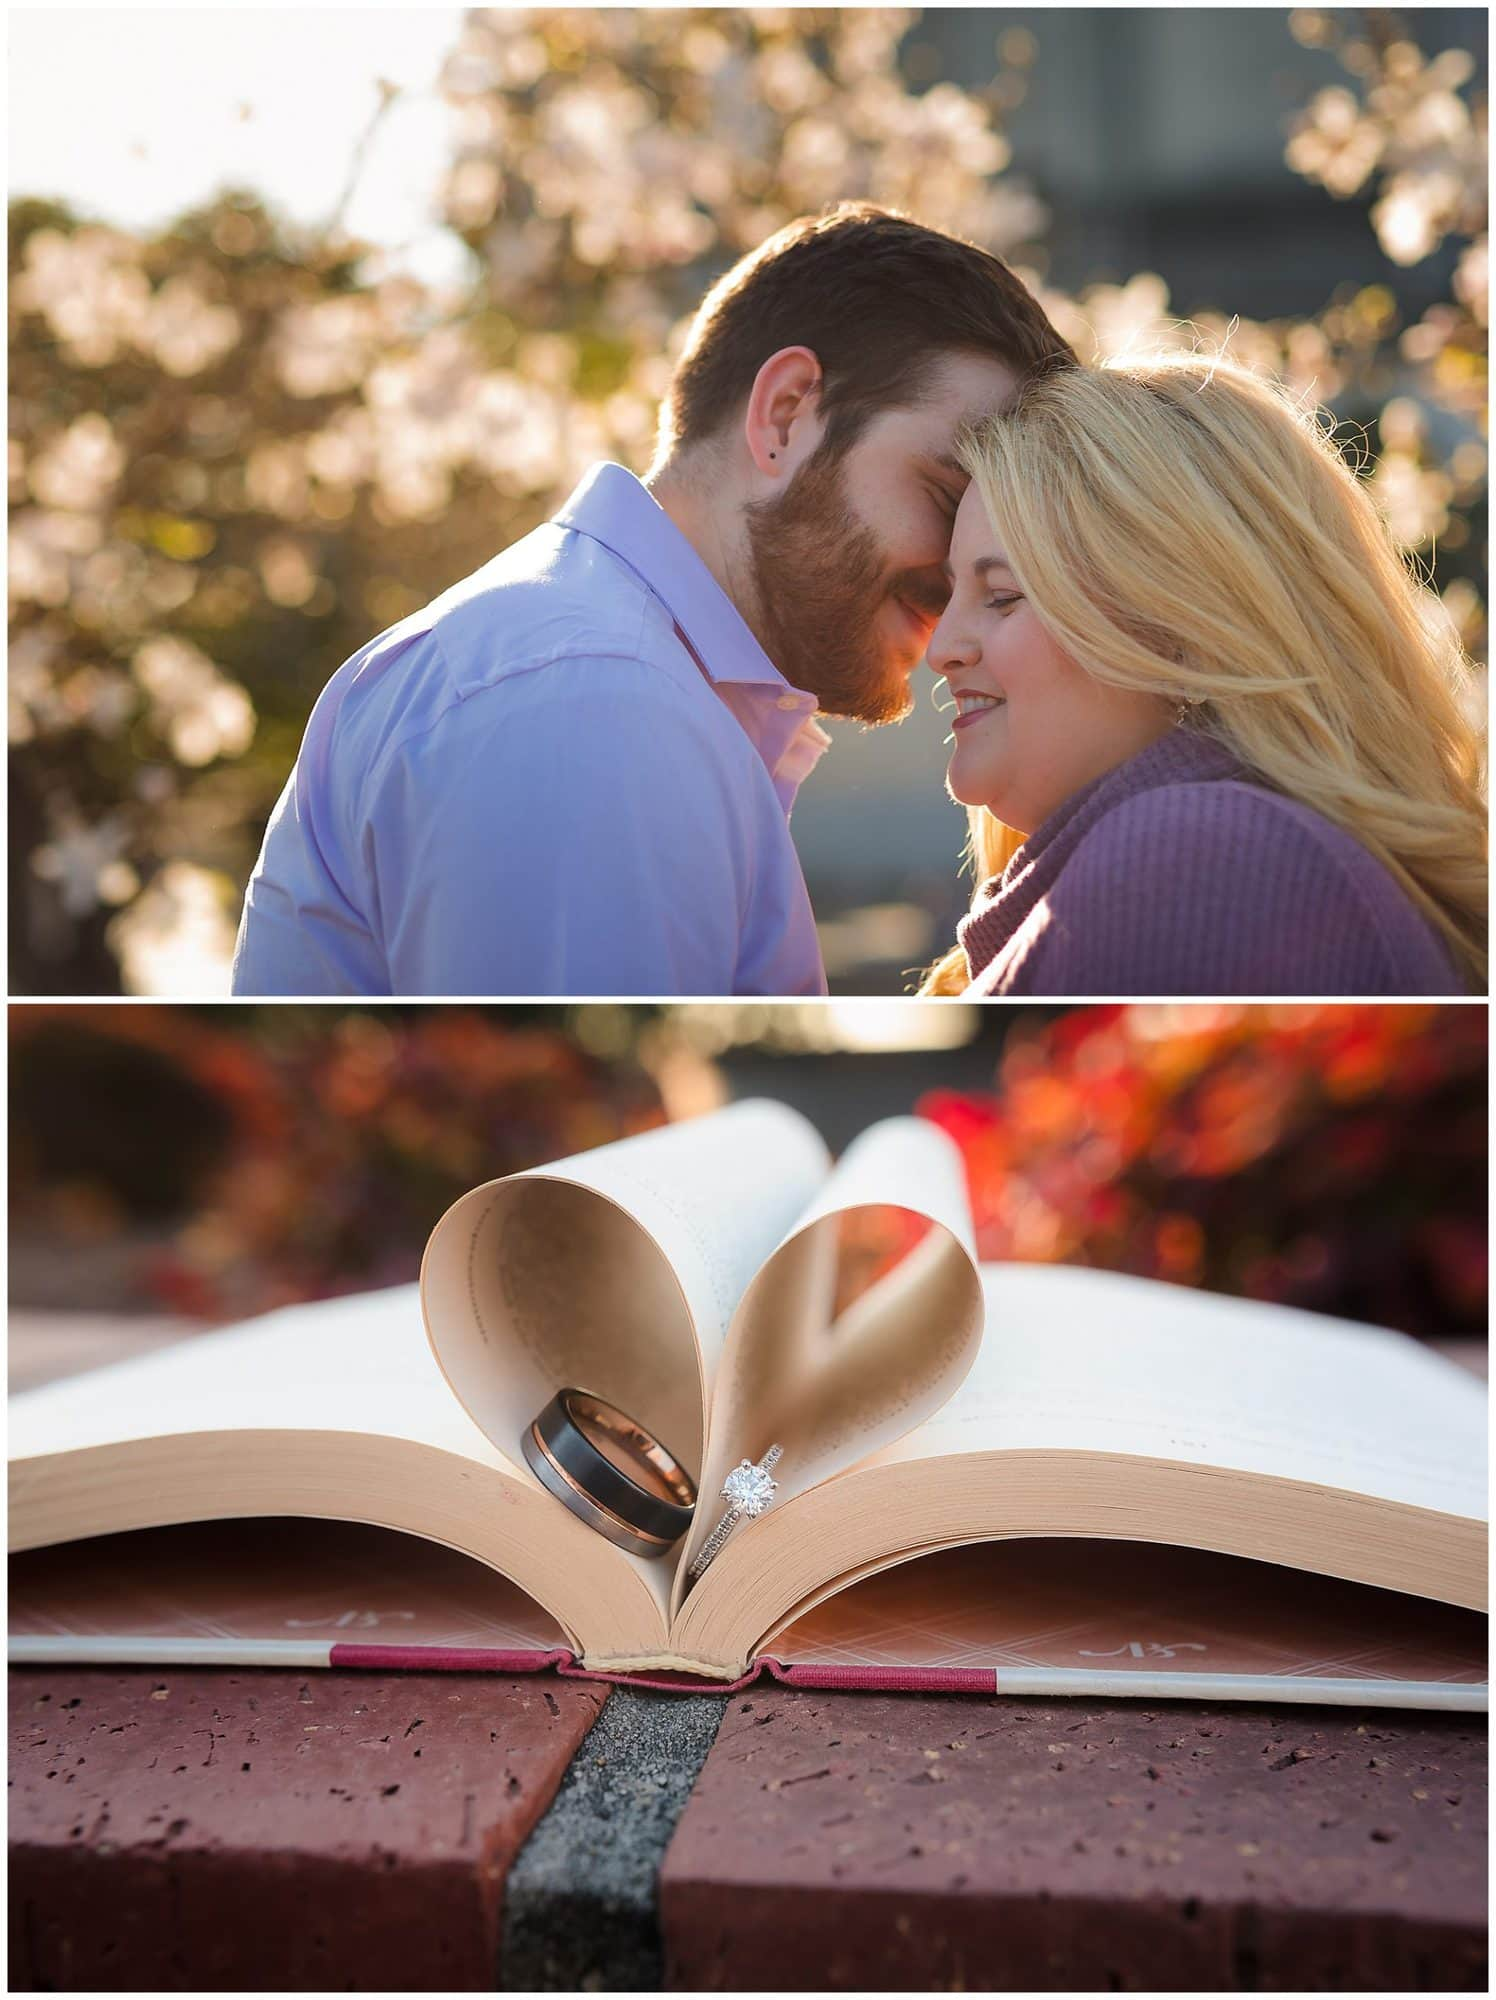 Couple nuzzling and rings in a book